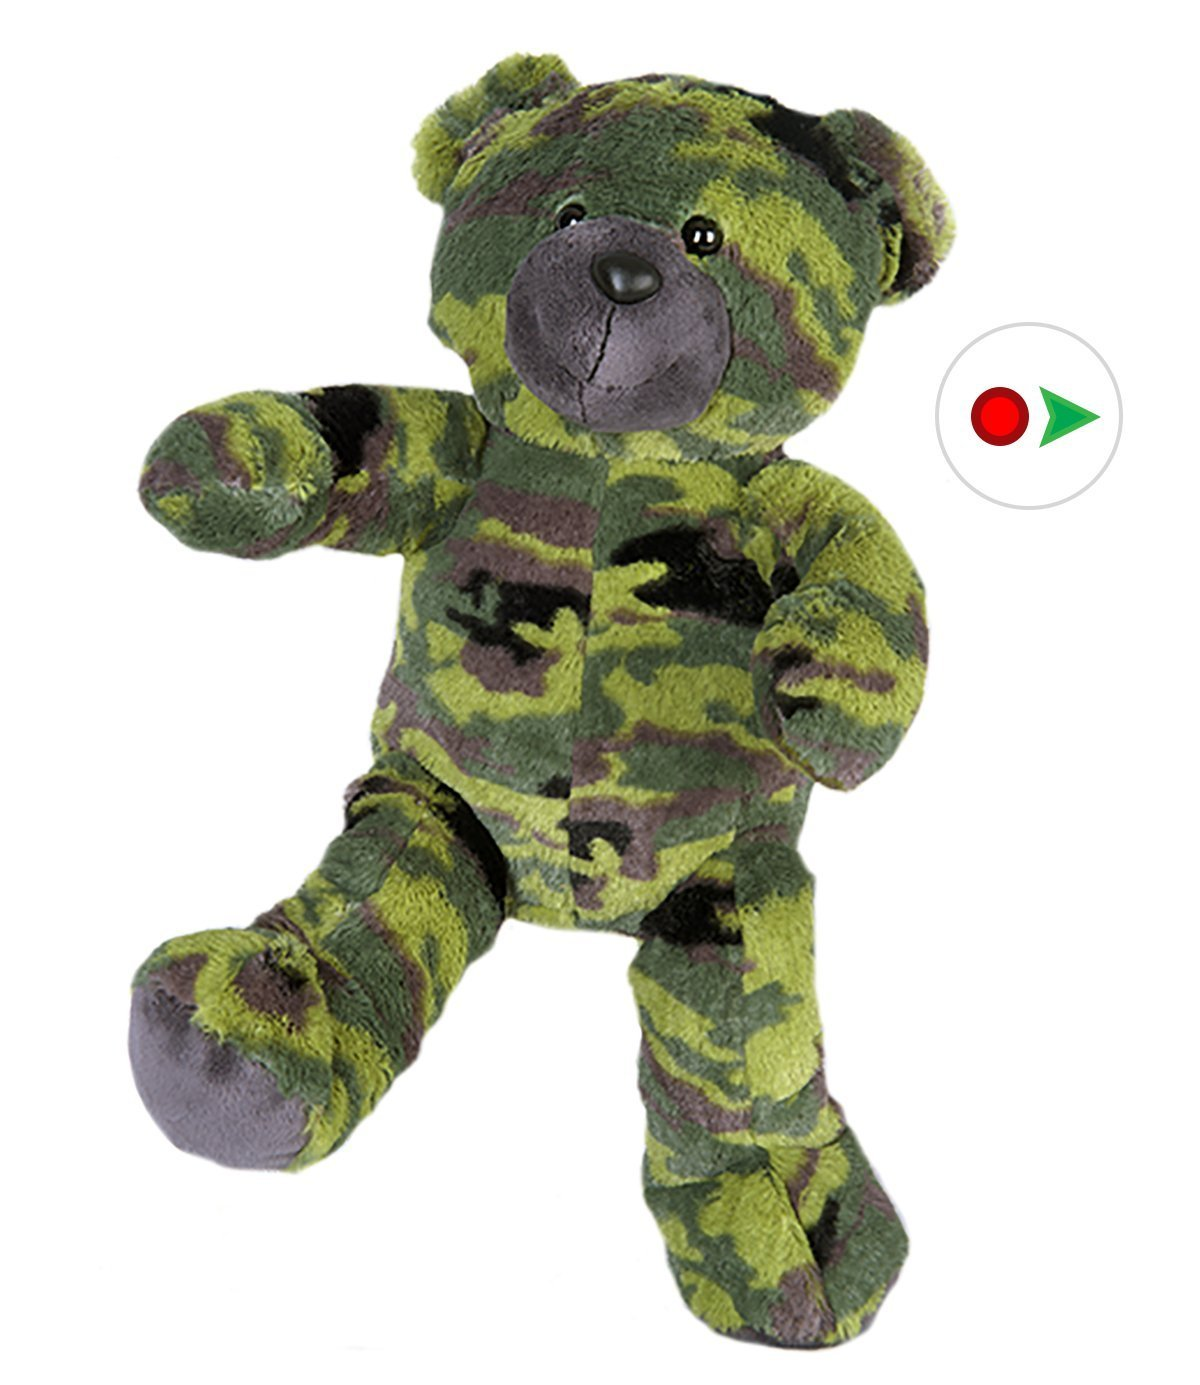 Record Your Own Plush Camo Teddy Bear Ready To Love In A Few Easy Steps by Teddy Mountain